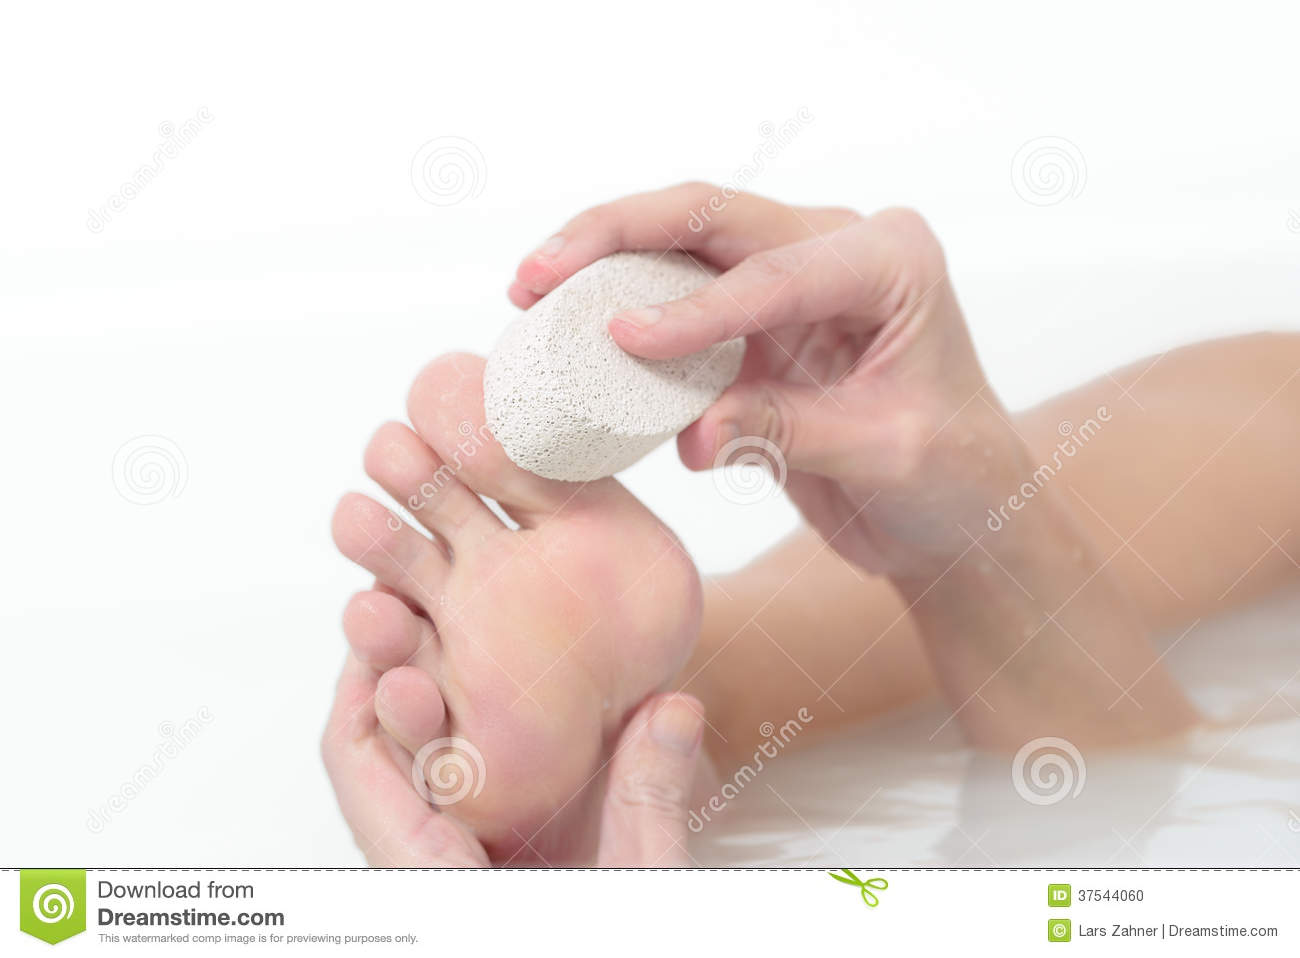 Woman Using A Pumice Stone To Exfoliate Her Feet Stock Photo Woman Using A  Pumice Stone